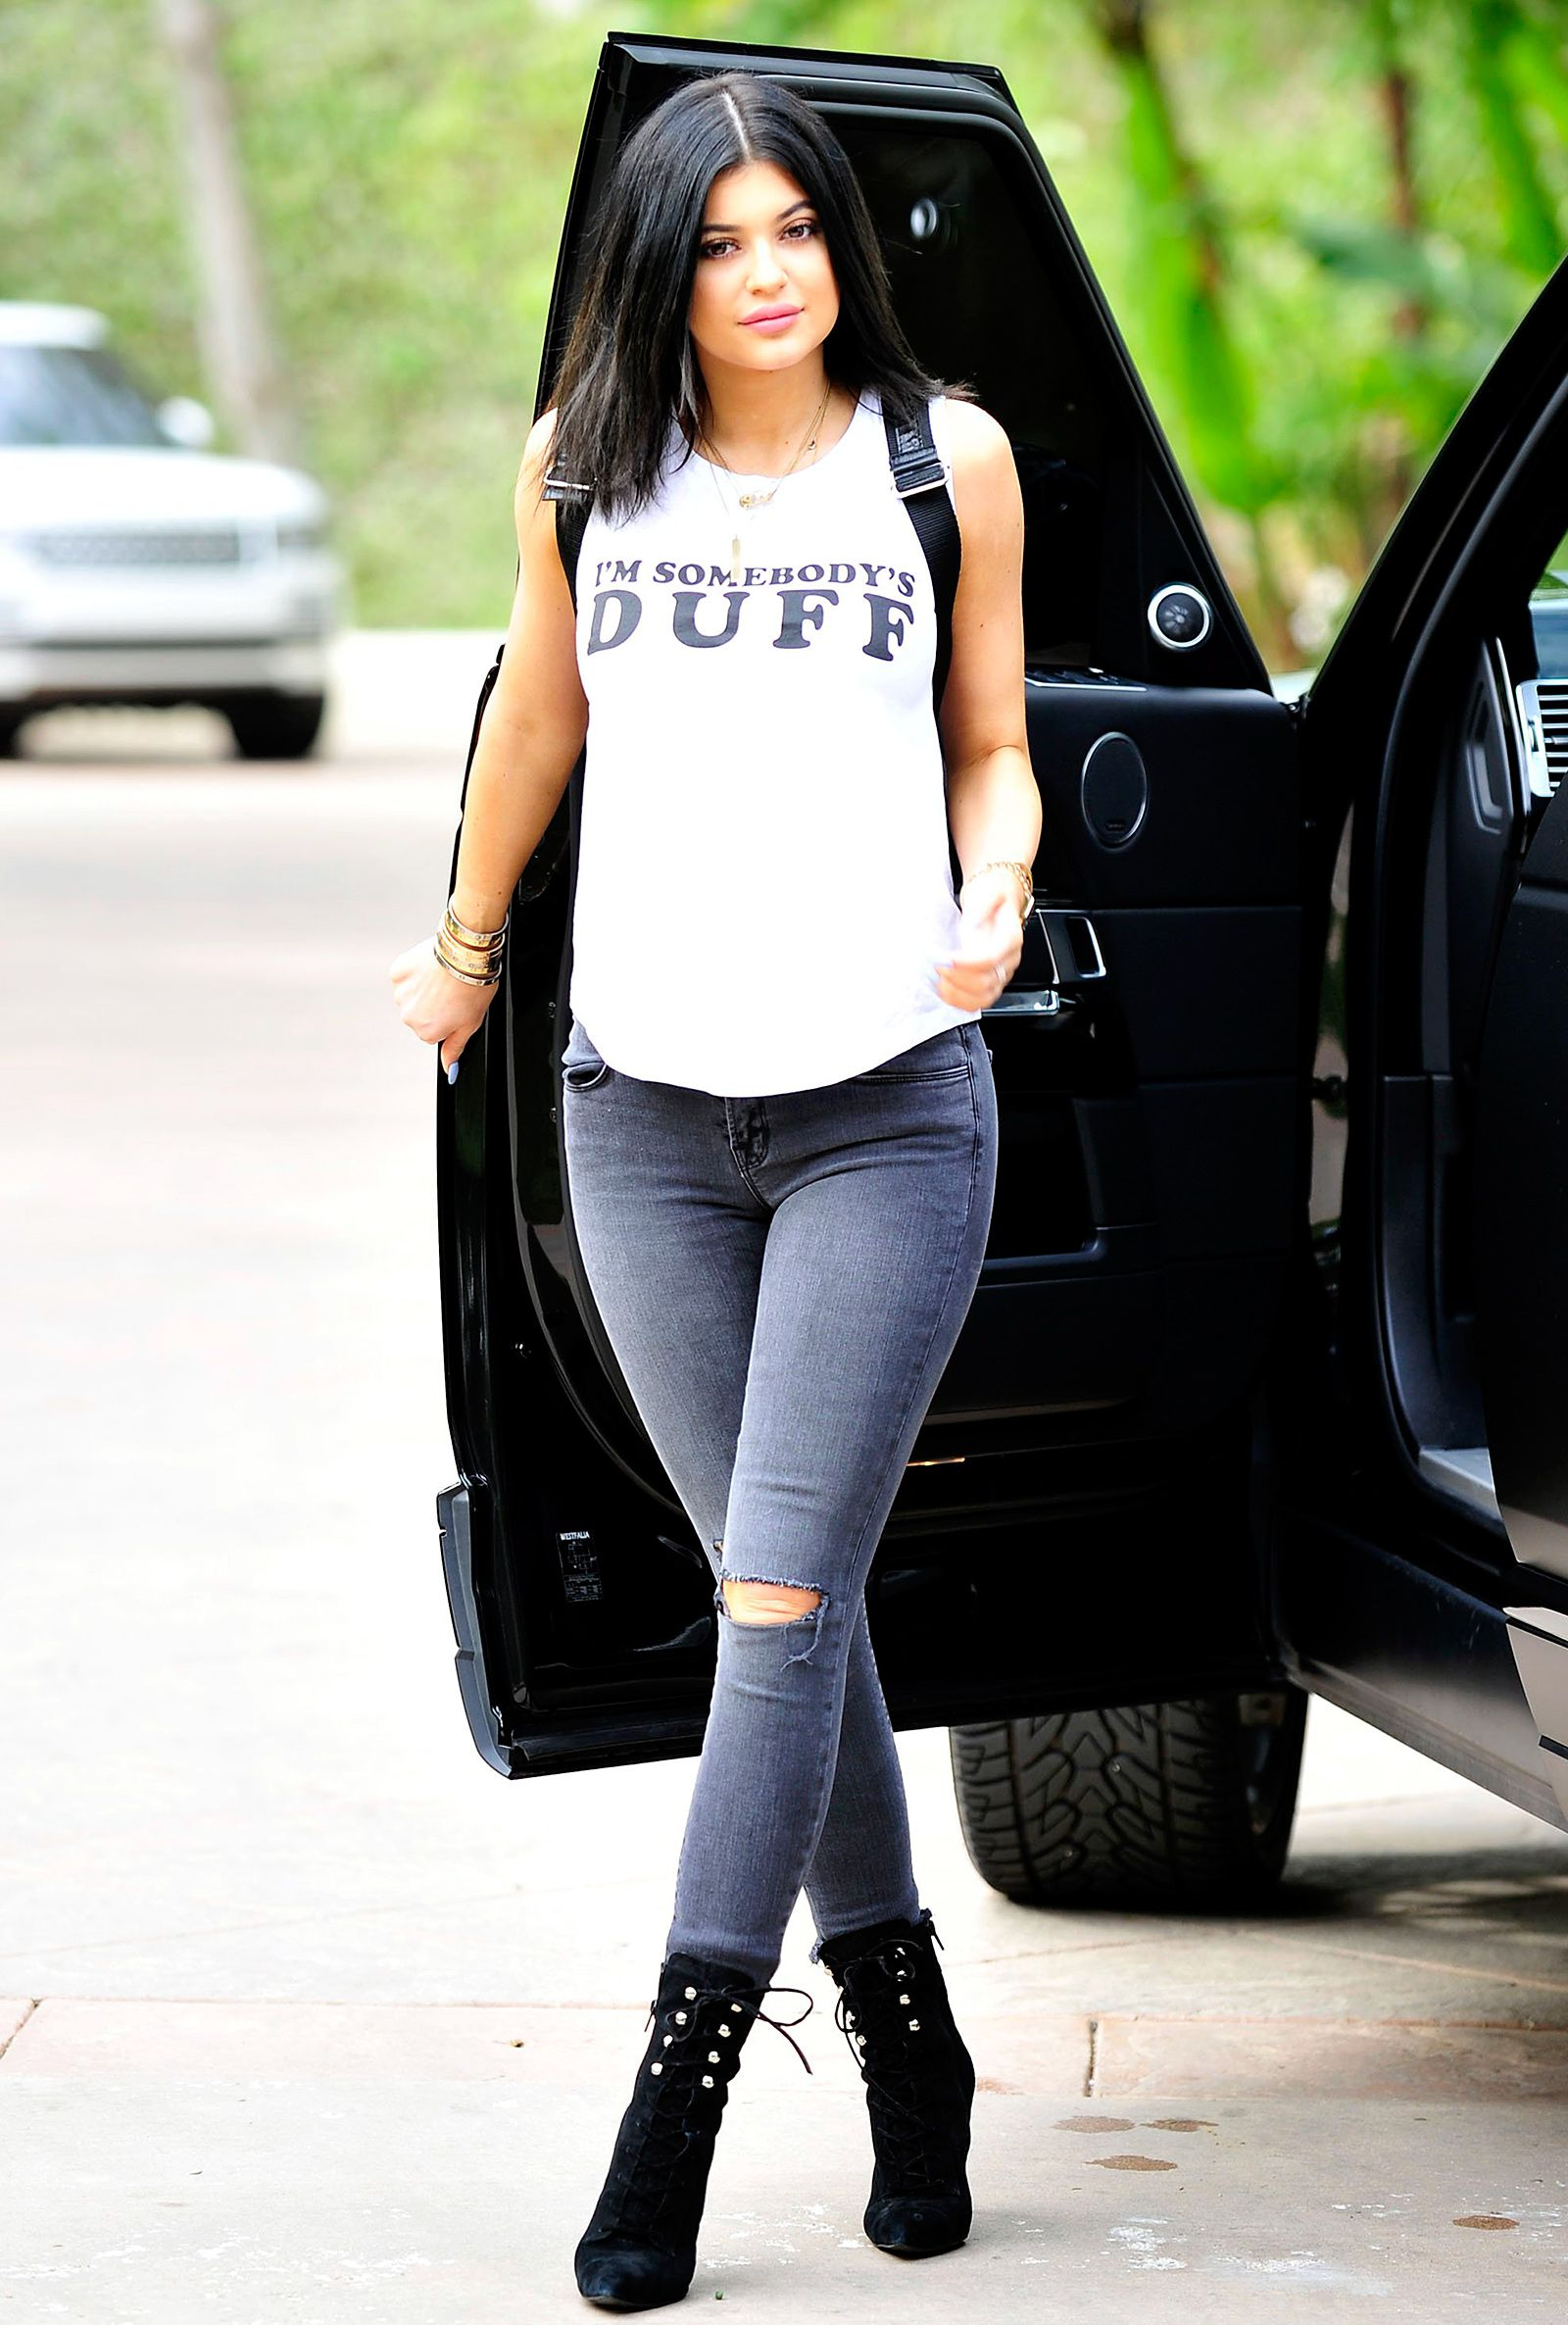 22 Best Outfits Of Kylie Jenner's Street Style Fashions